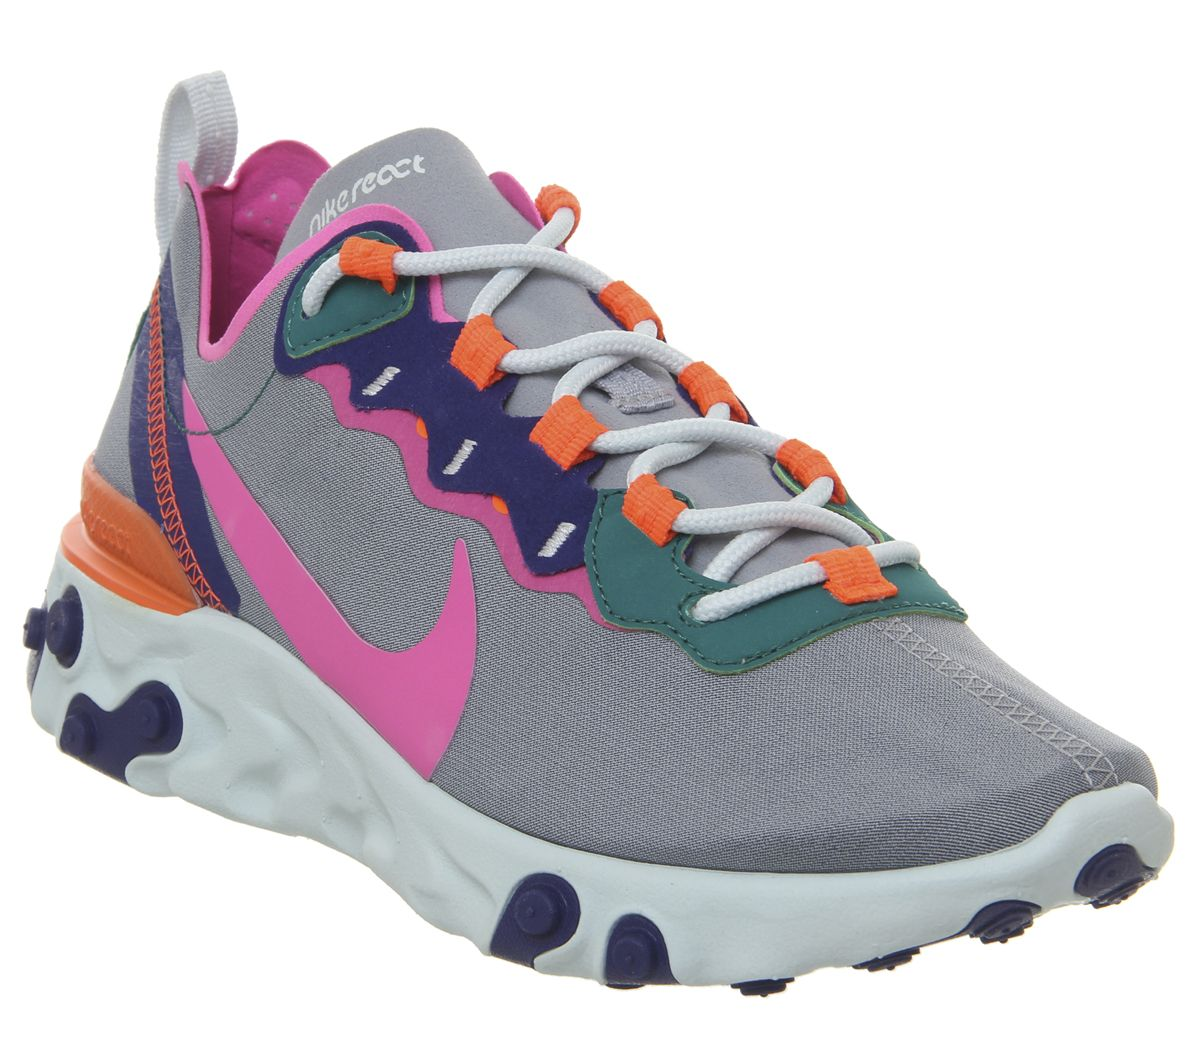 official photos 690e4 3e616 Nike React Element 55 Trainers Wolf Grey Laser Fuchsia Hyper Crimson ...